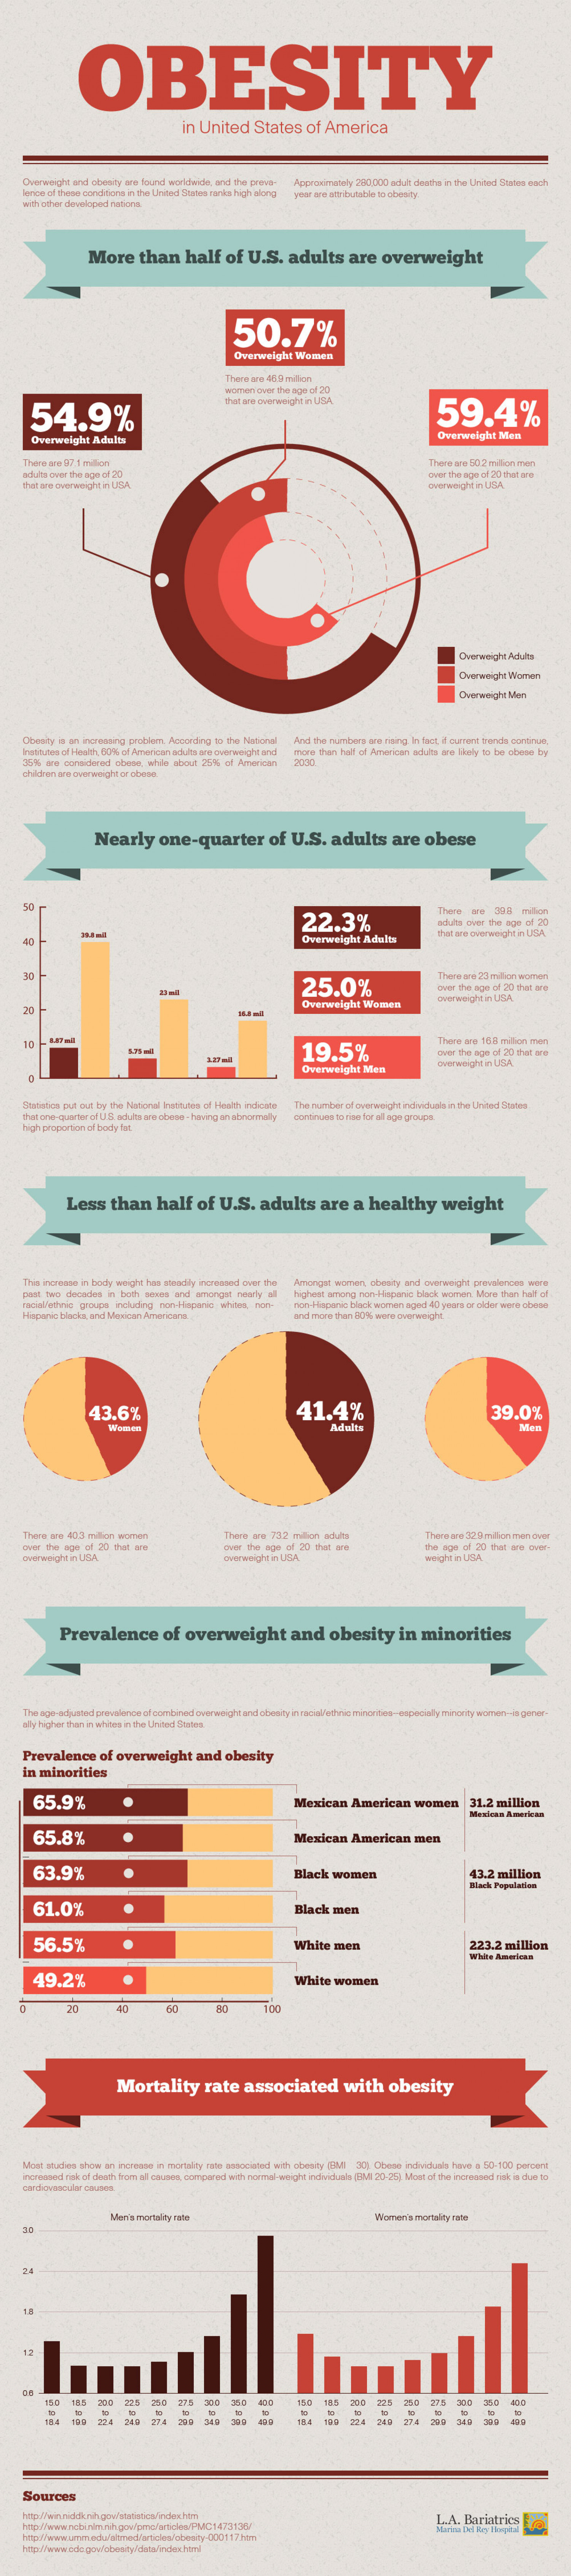 Obesity in the US Infographic